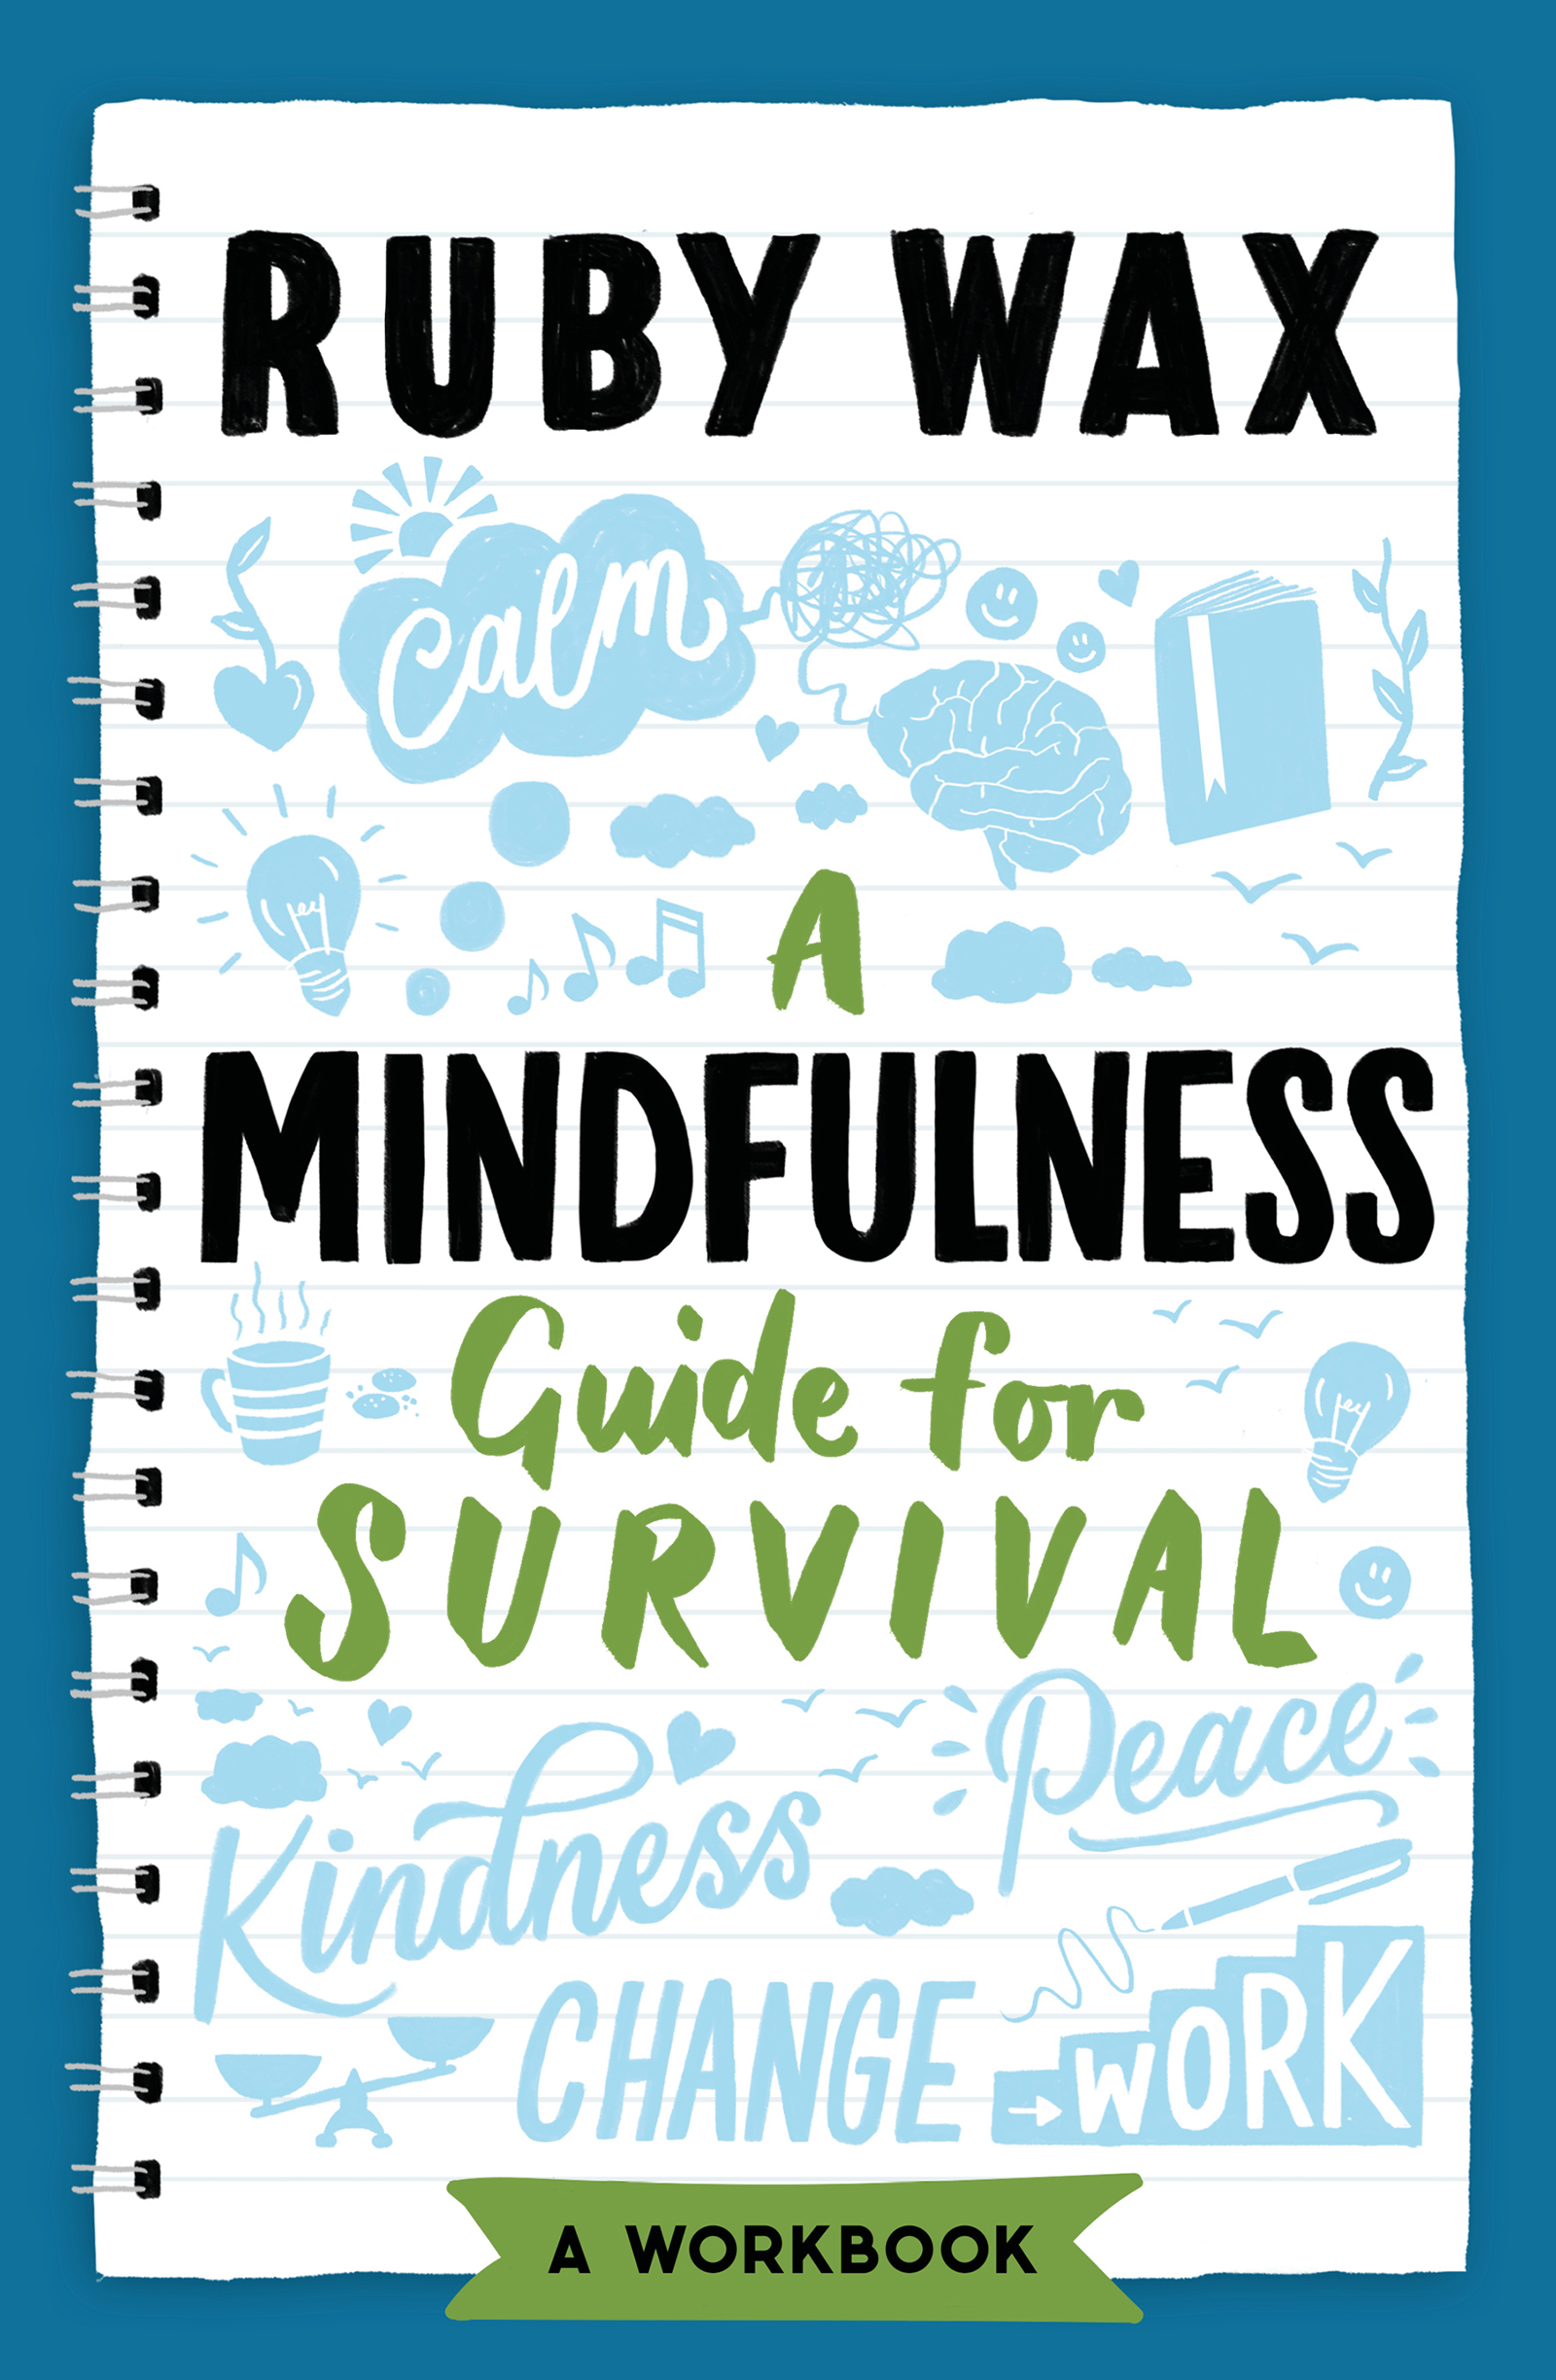 A Mindfulness Guide to Survival